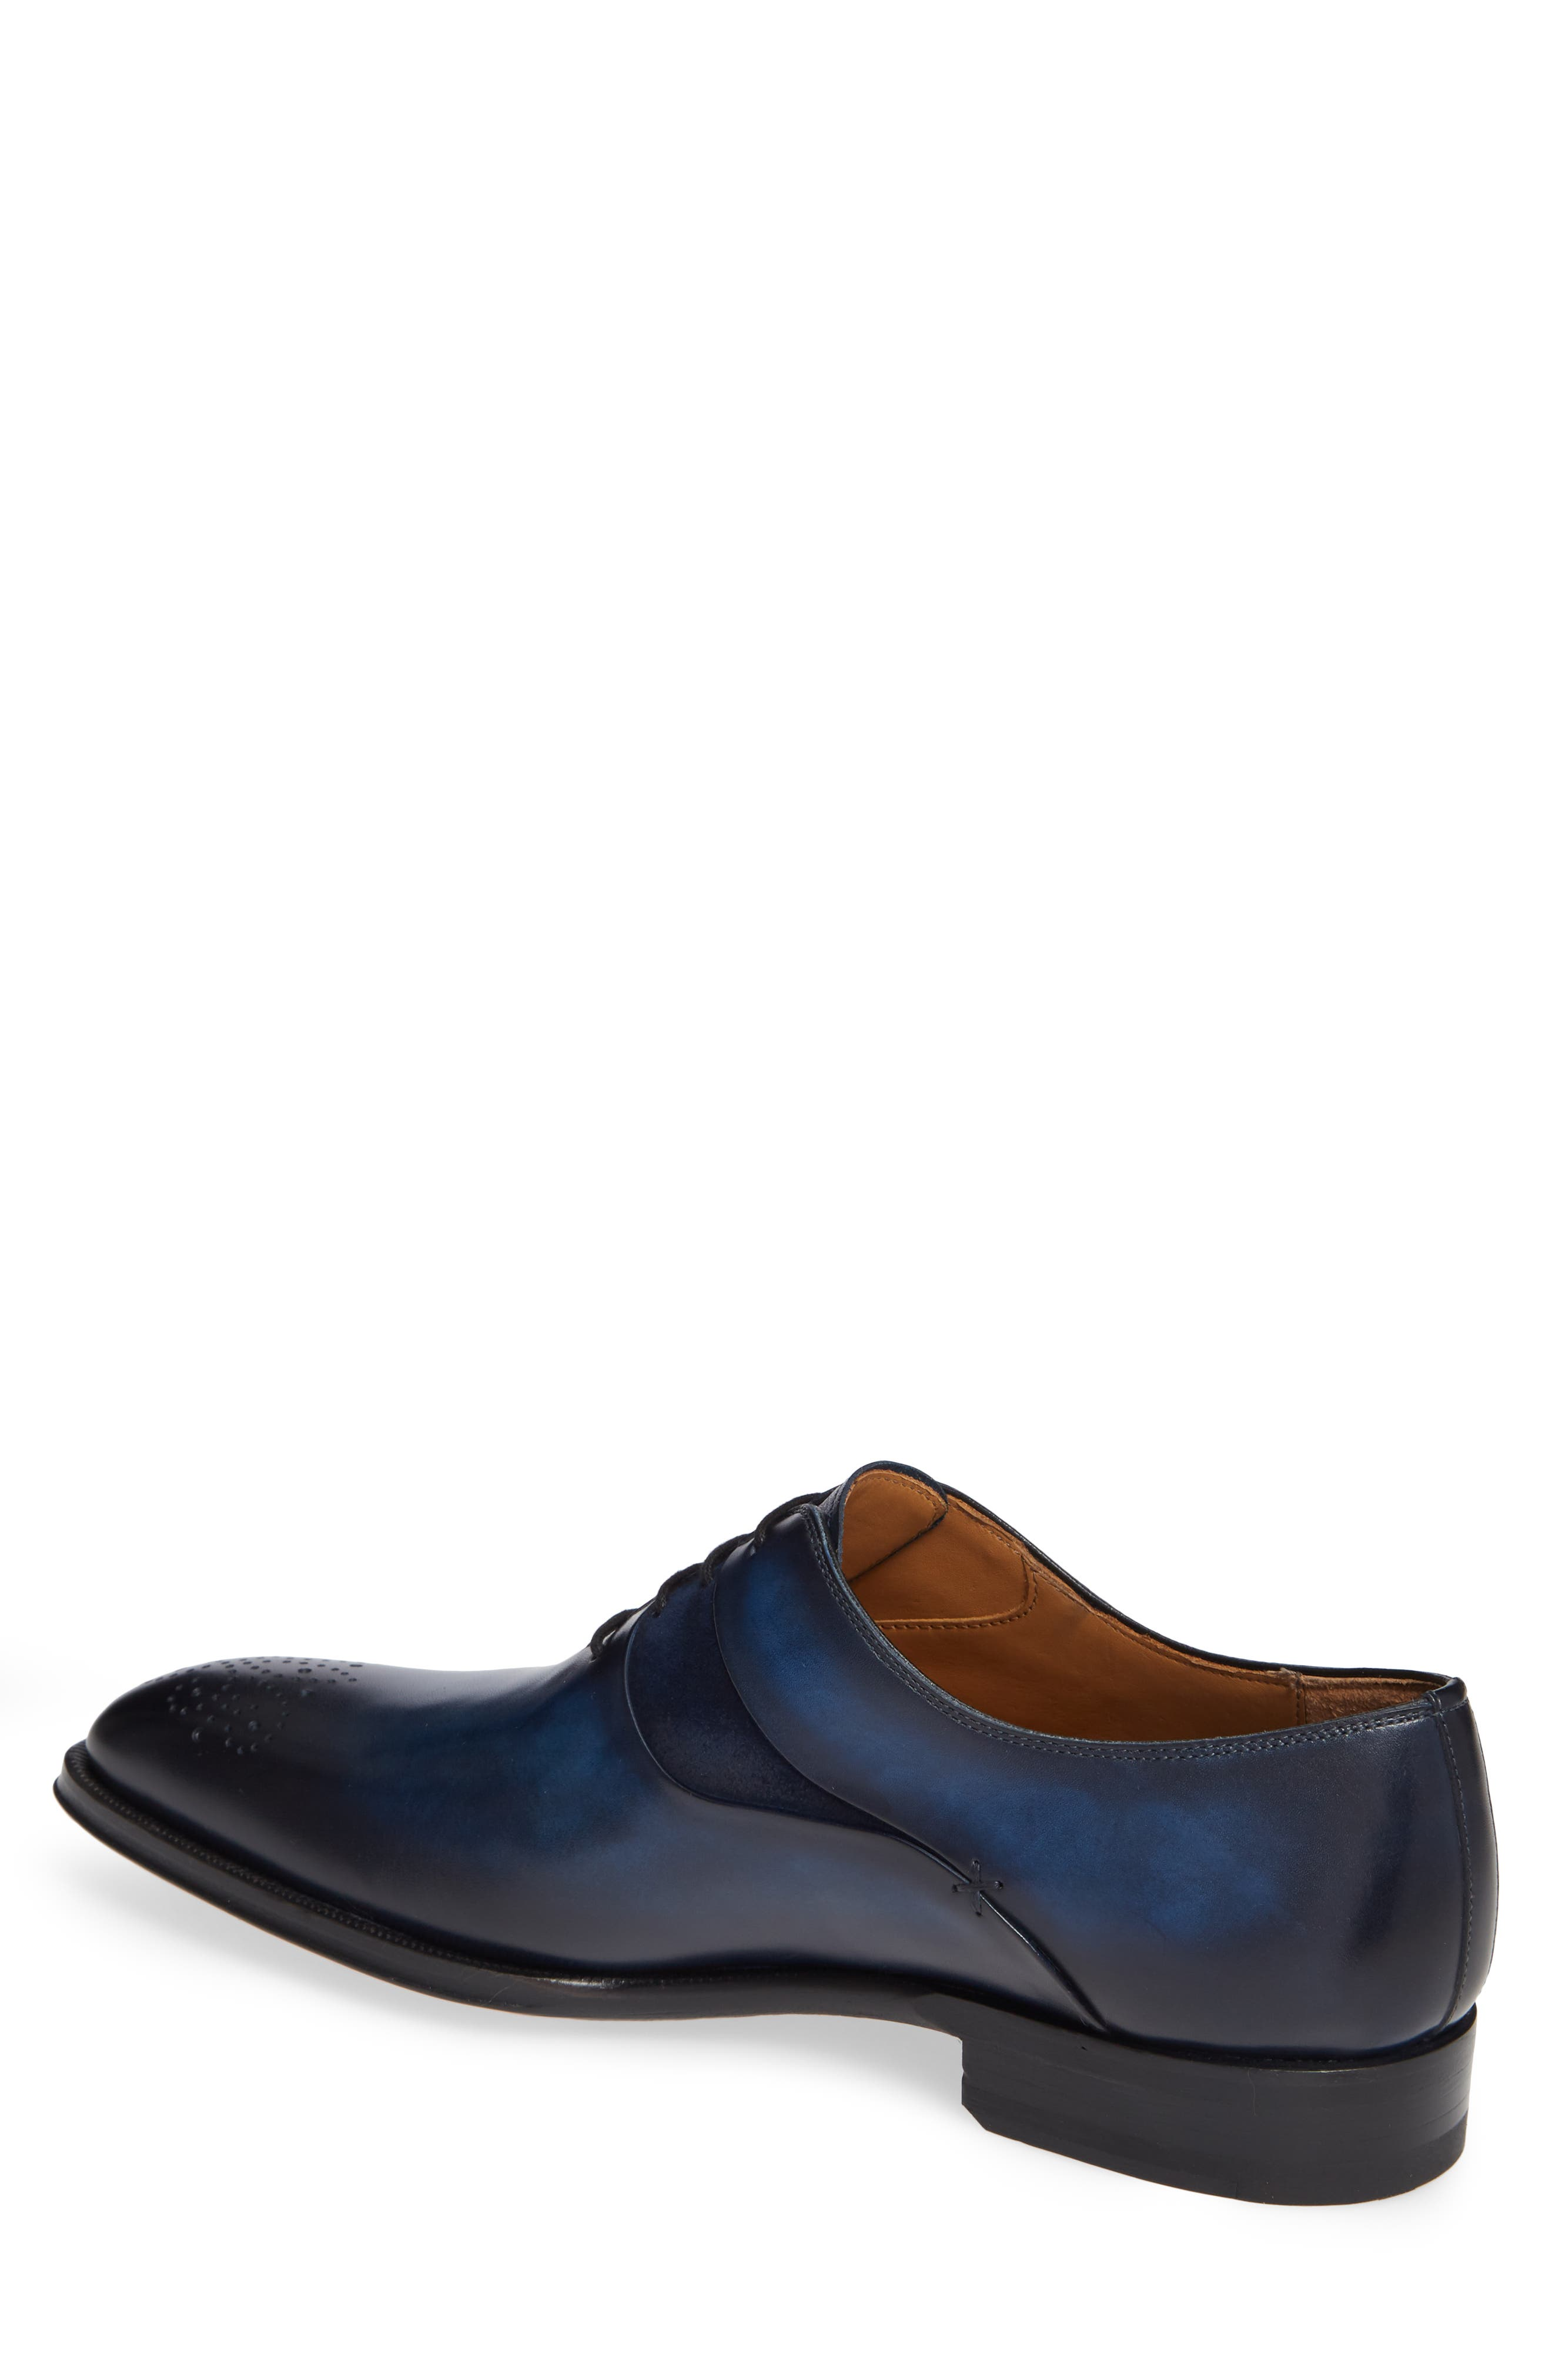 Hector Plain Toe Oxford,                             Alternate thumbnail 2, color,                             NAVY LEATHER